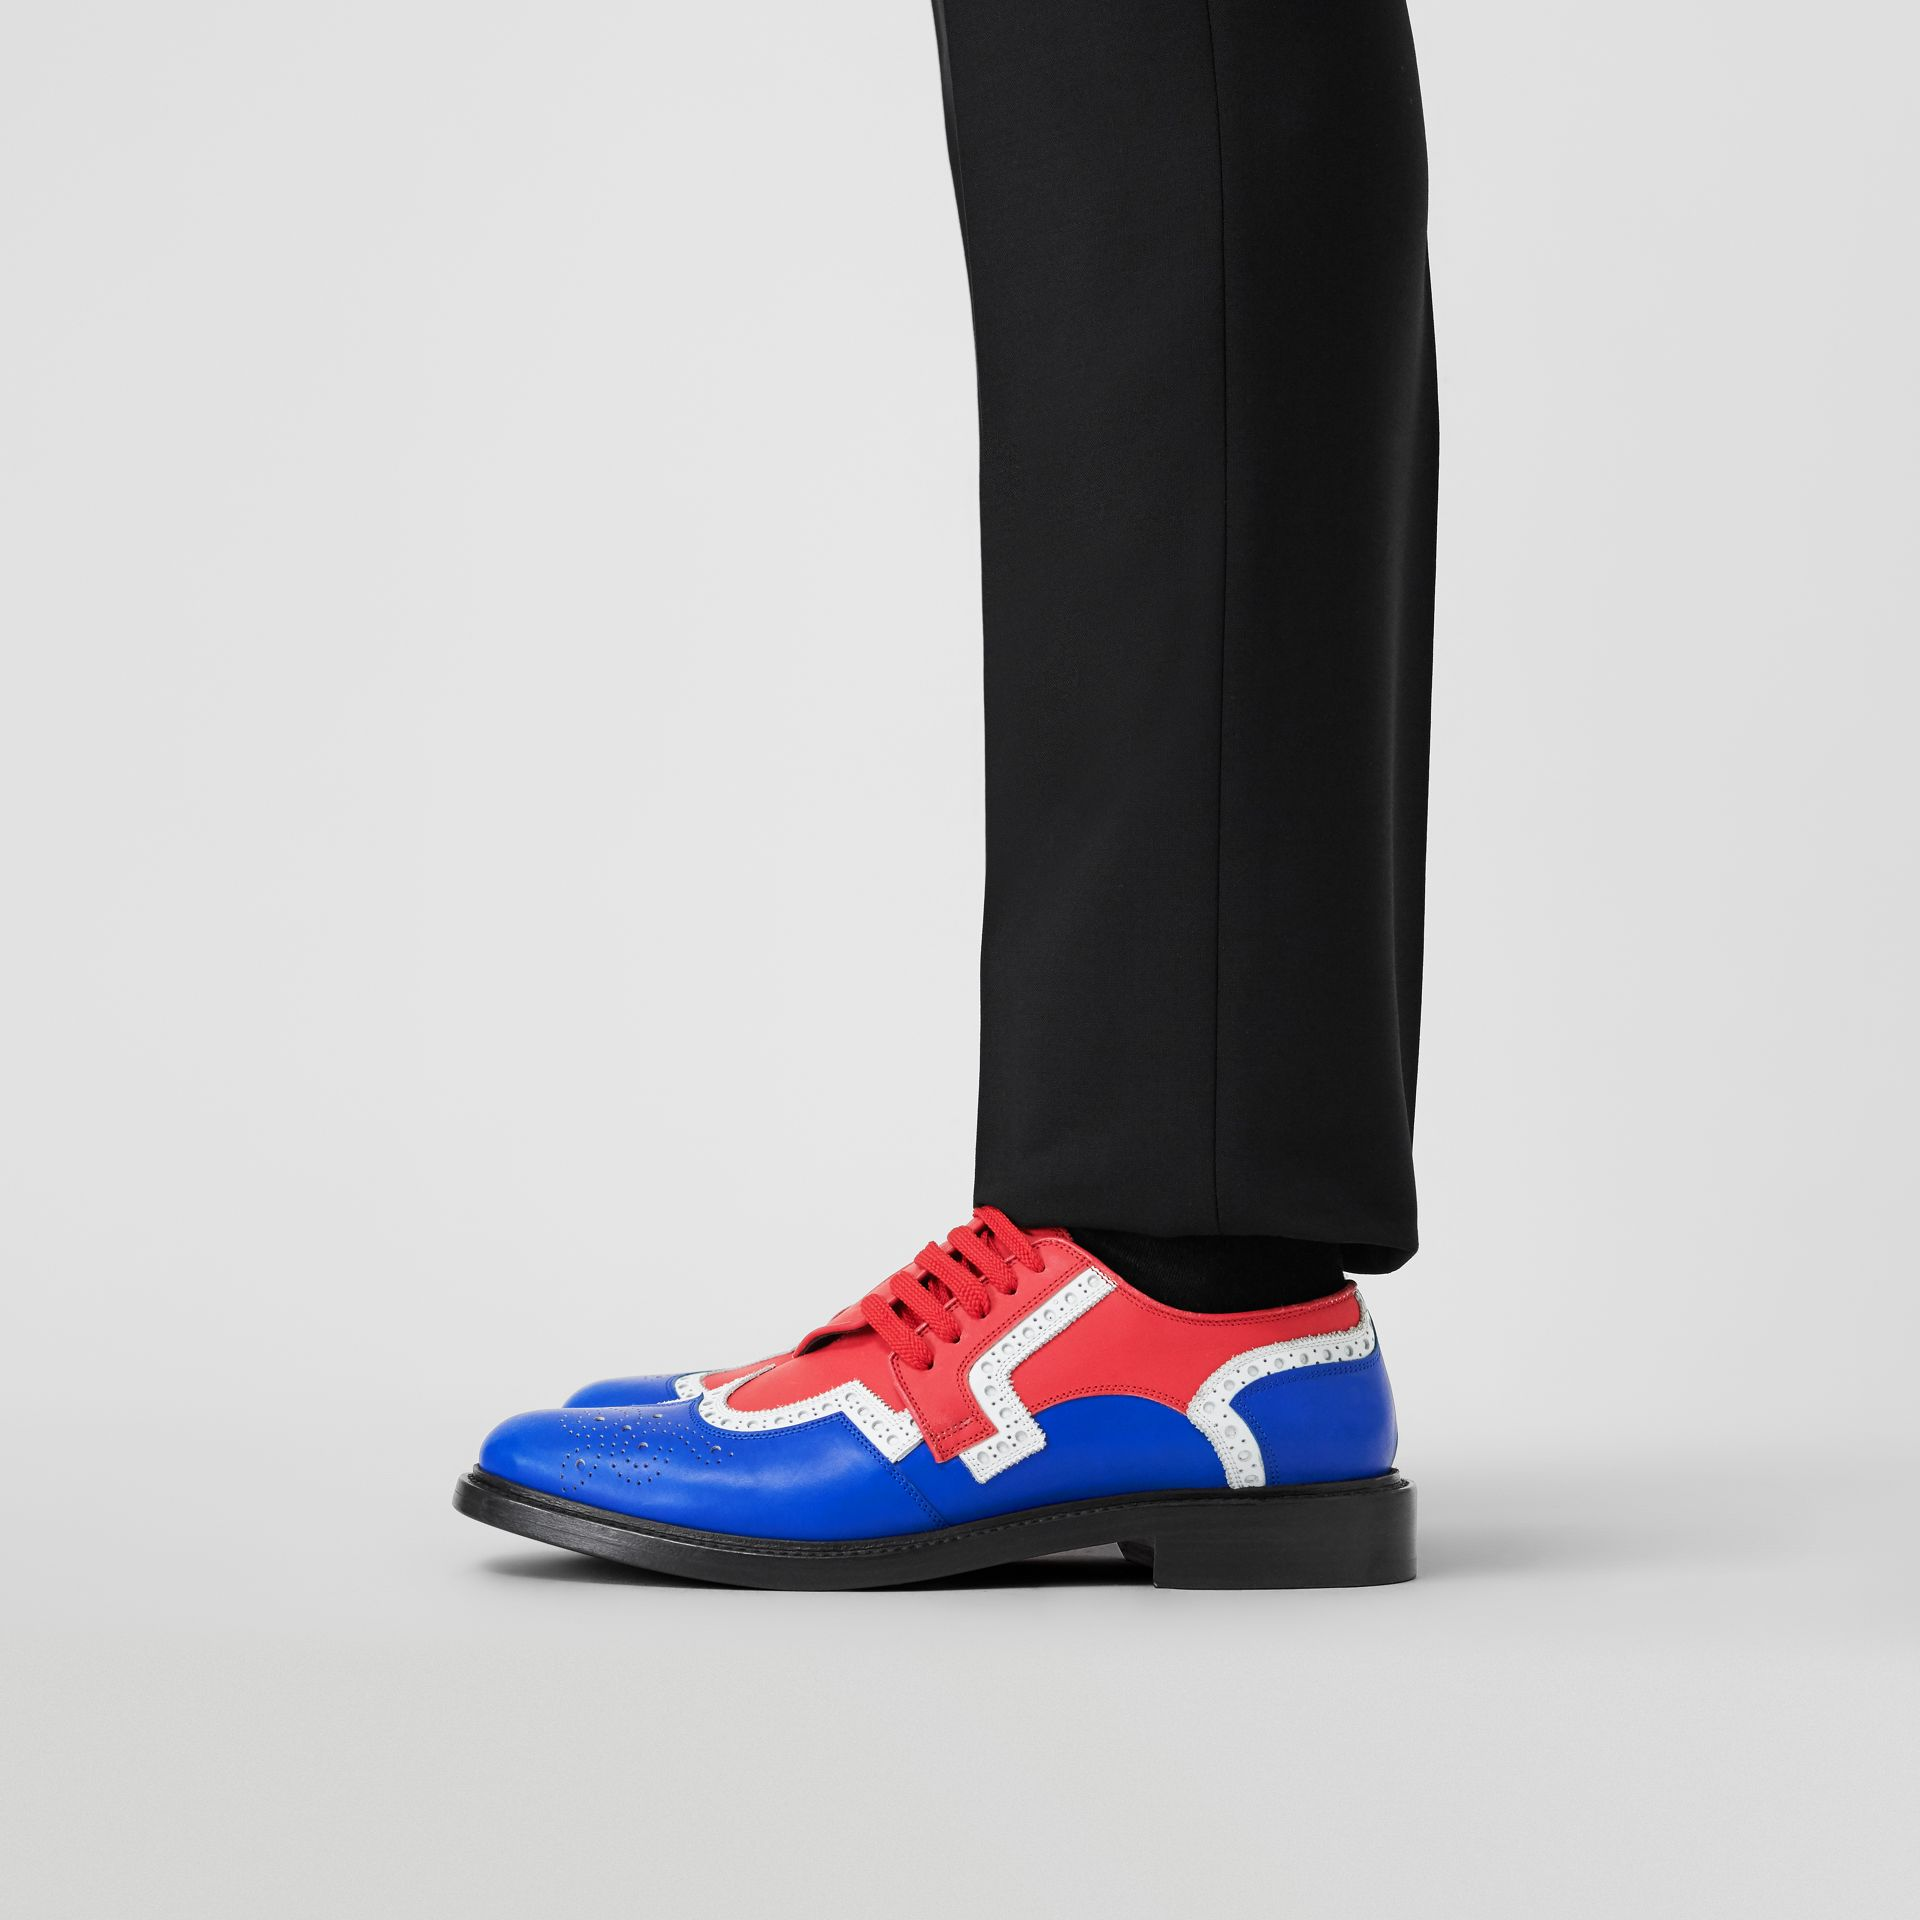 Asymmetric Closure Tri-tone Leather Brogues in Blue/red - Men | Burberry United Kingdom - gallery image 2